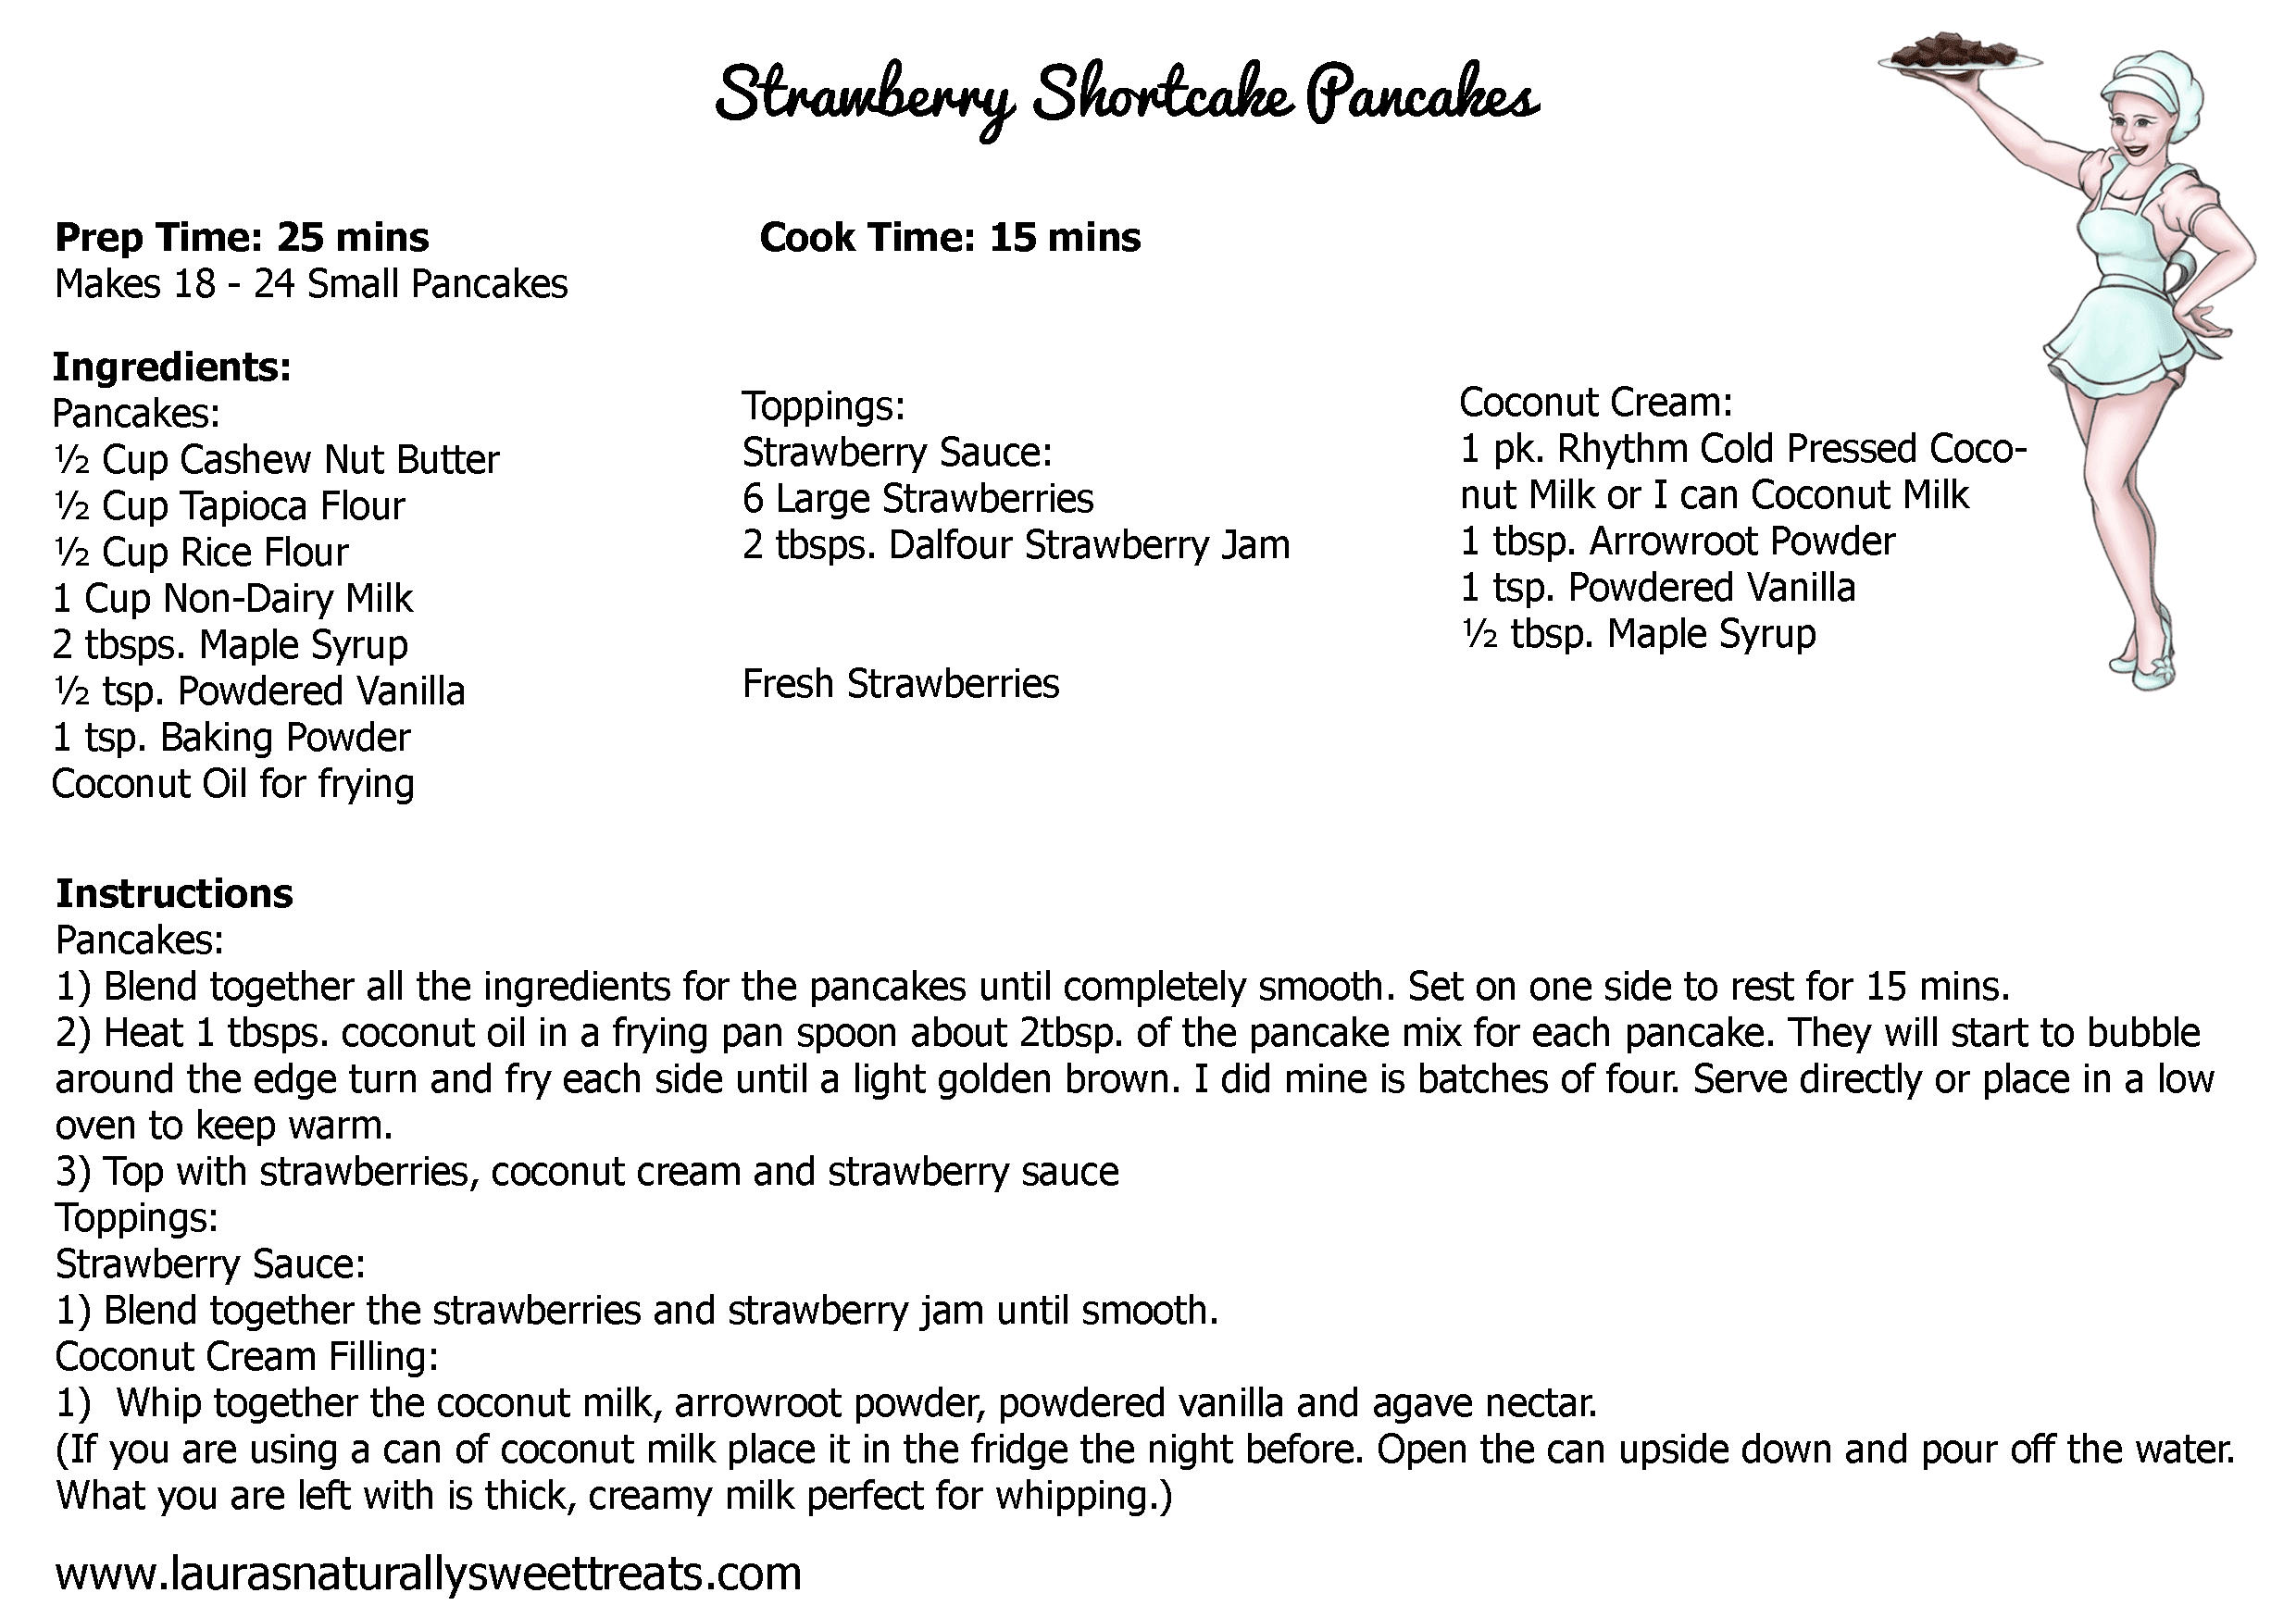 strawberry shortcake pancakes recipe card